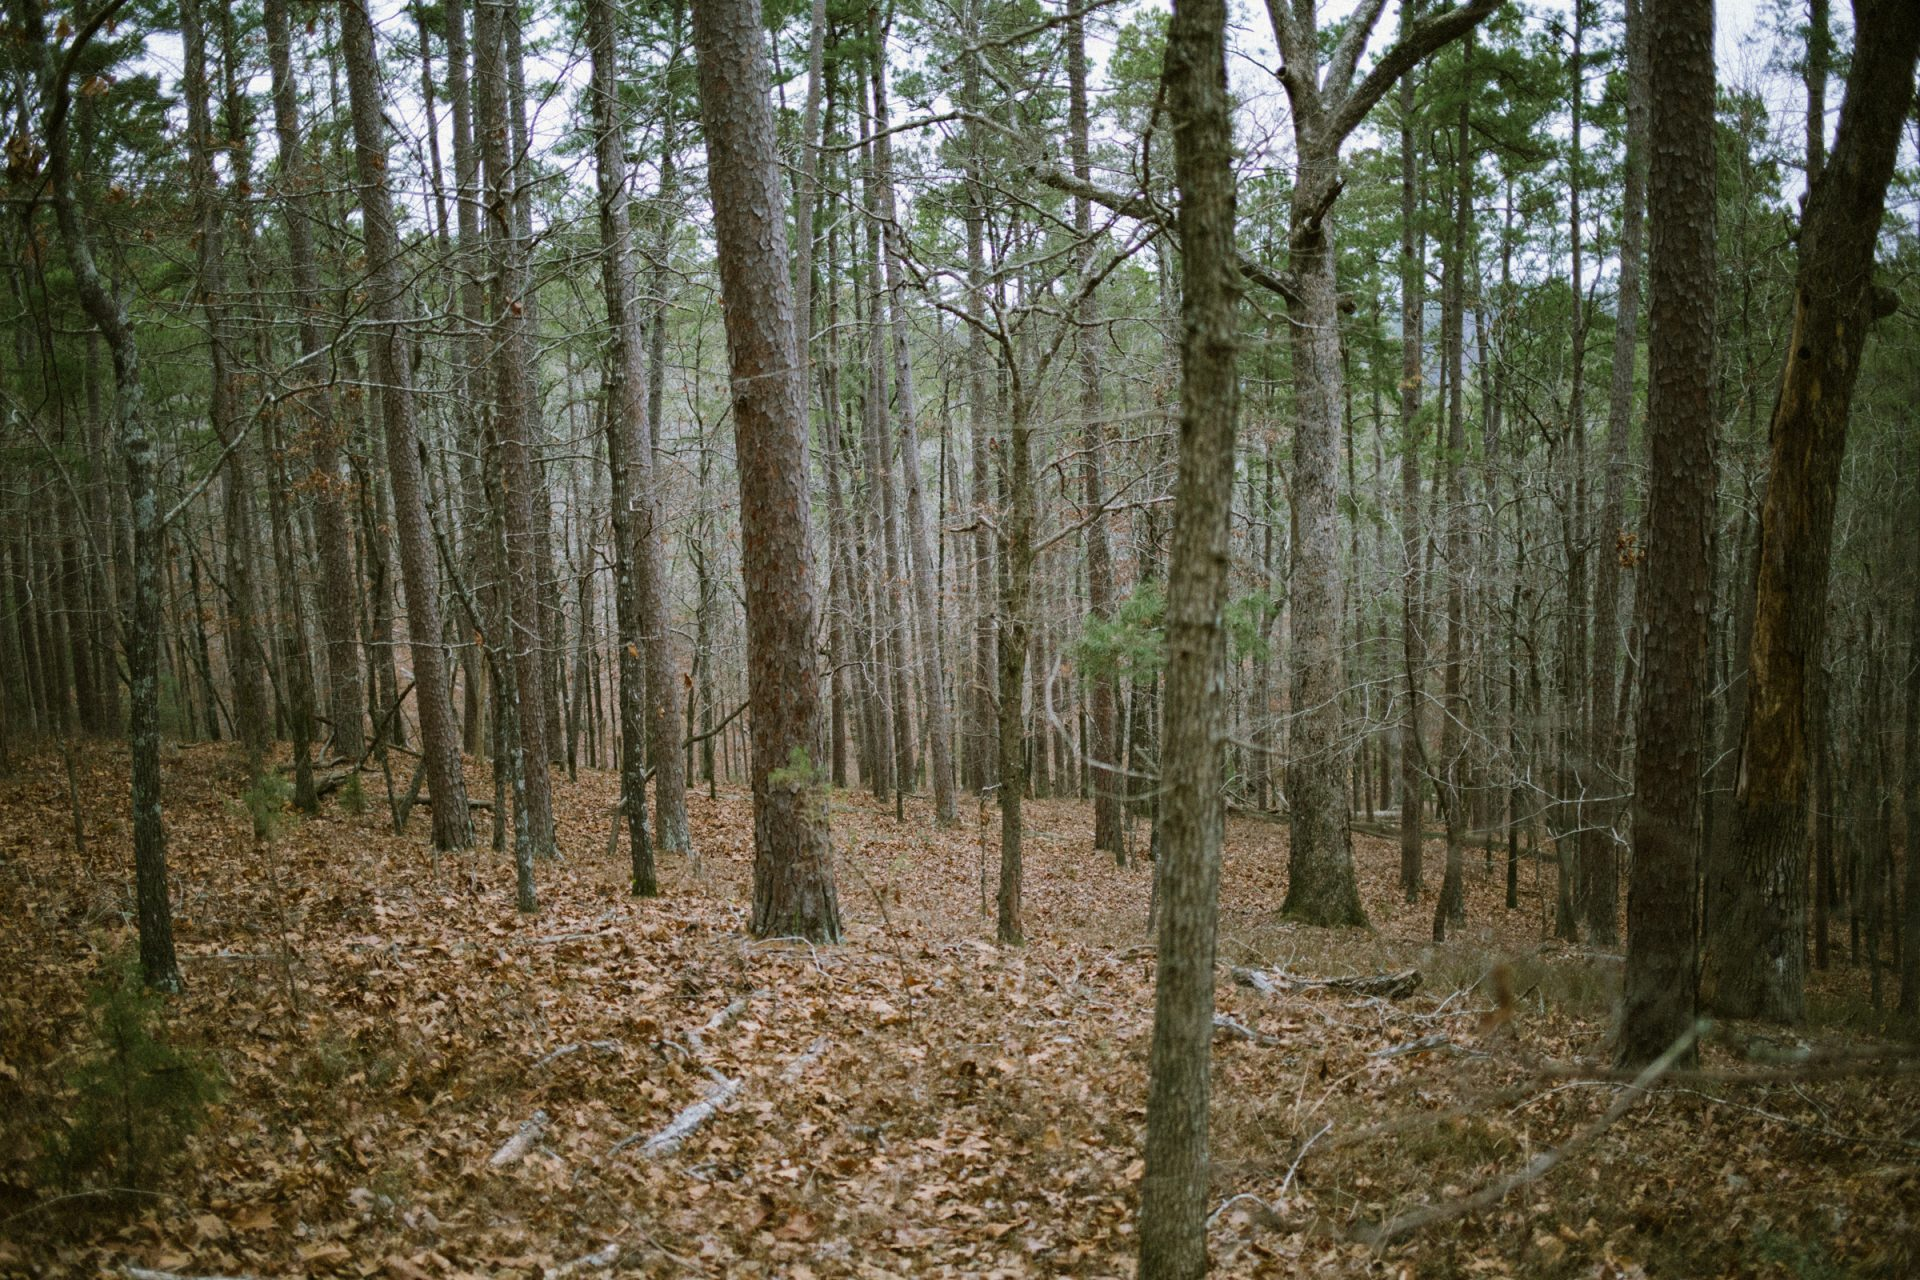 Hiking in Beavers Bend State Parking